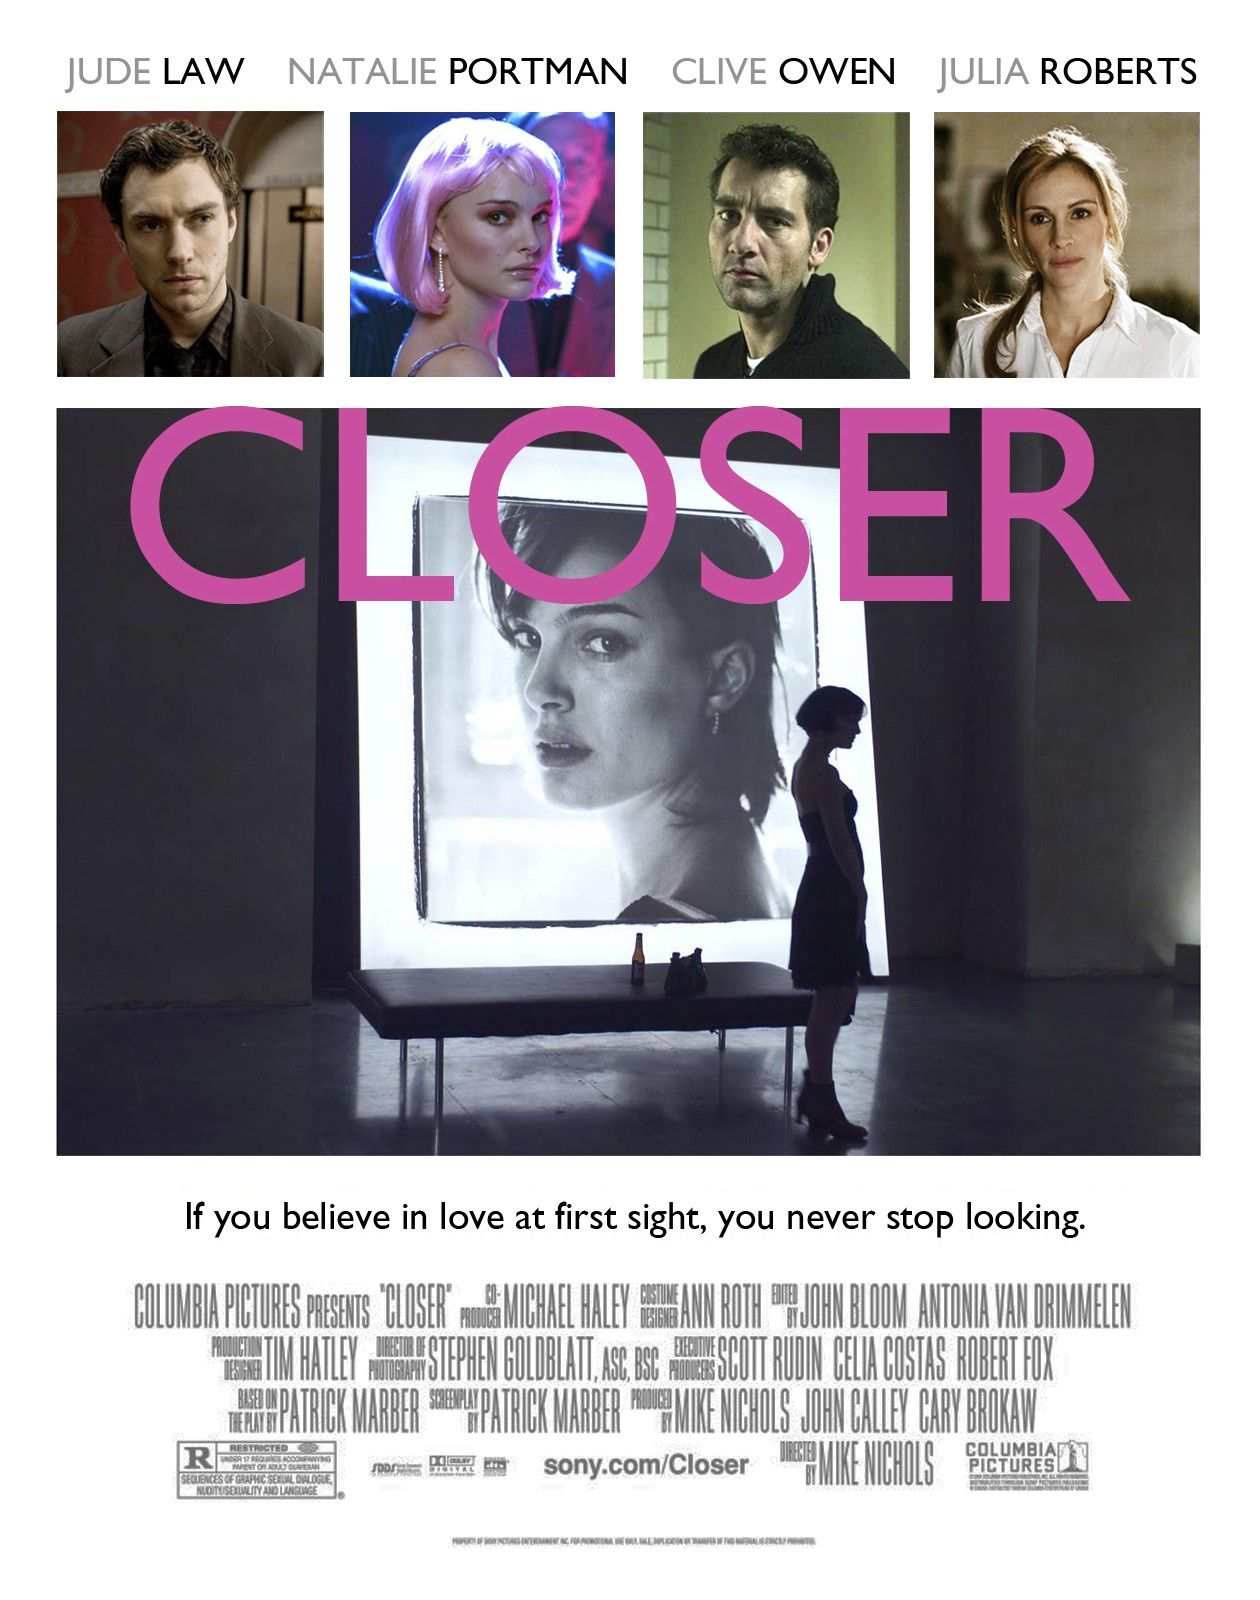 Natalie Portman | Closer / Mike Nichols 2004 Movie Poster Affiche film